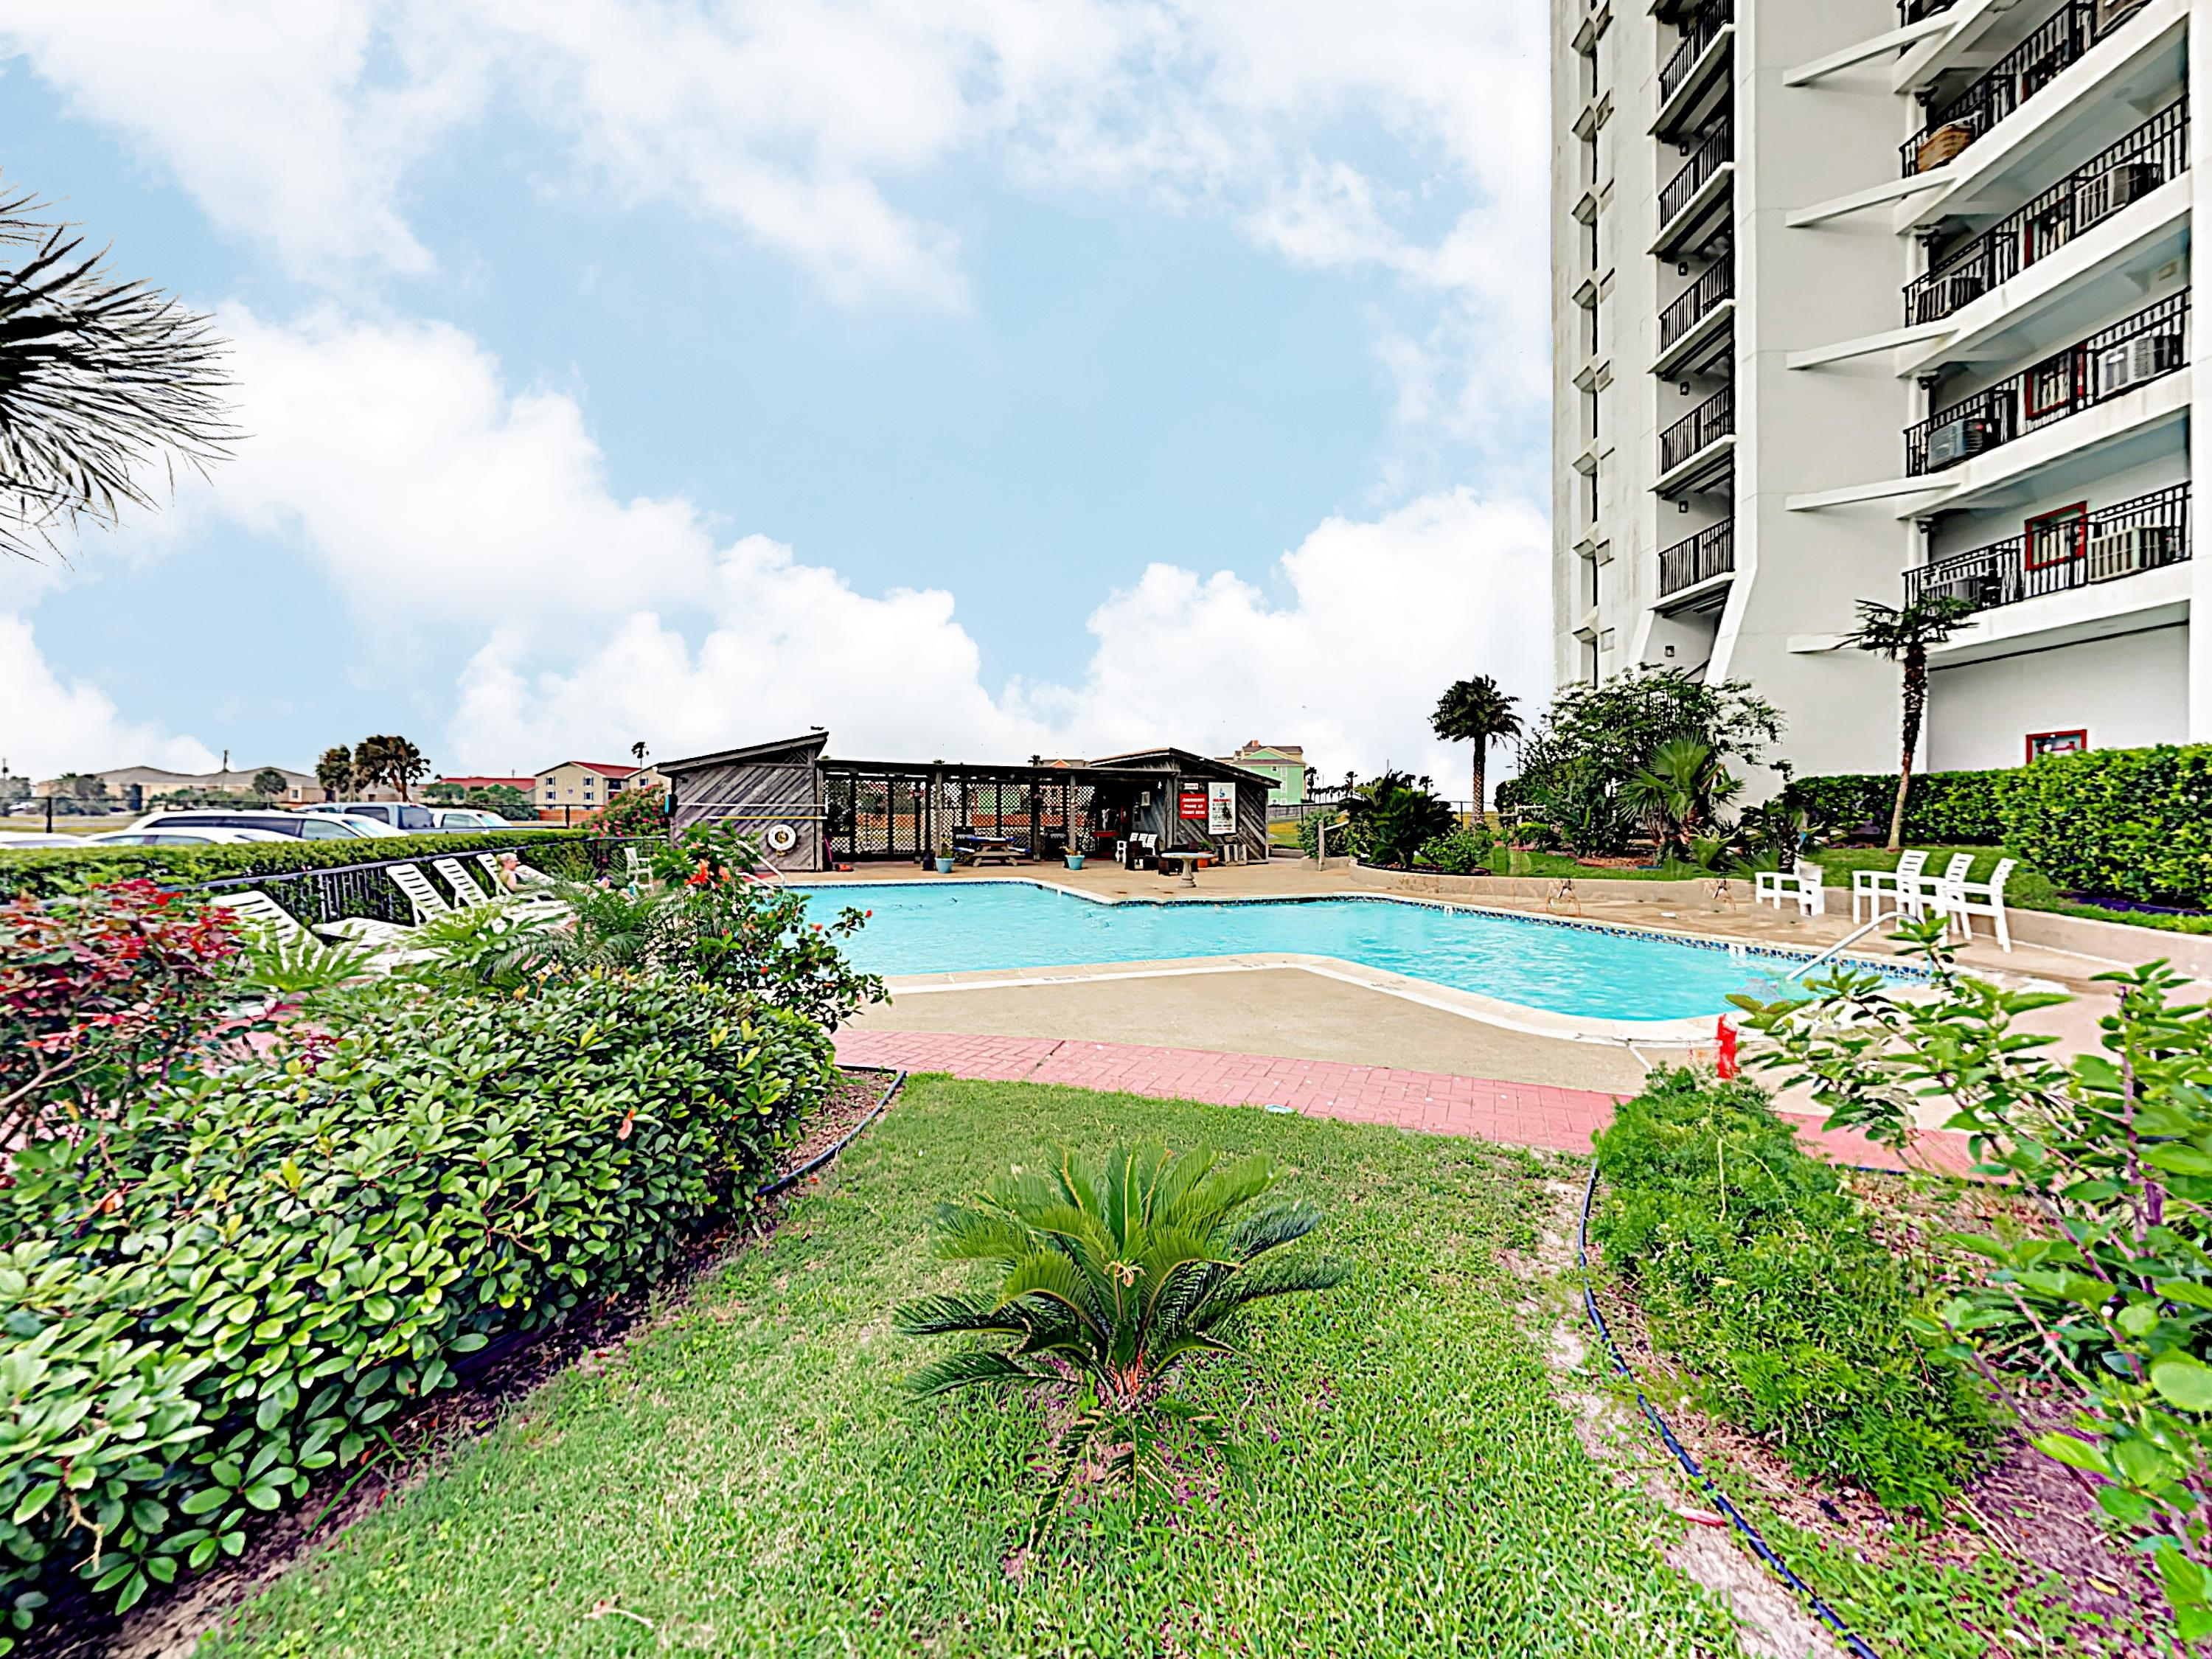 Enjoy your stay at the beautiful By The Sea condo complex.